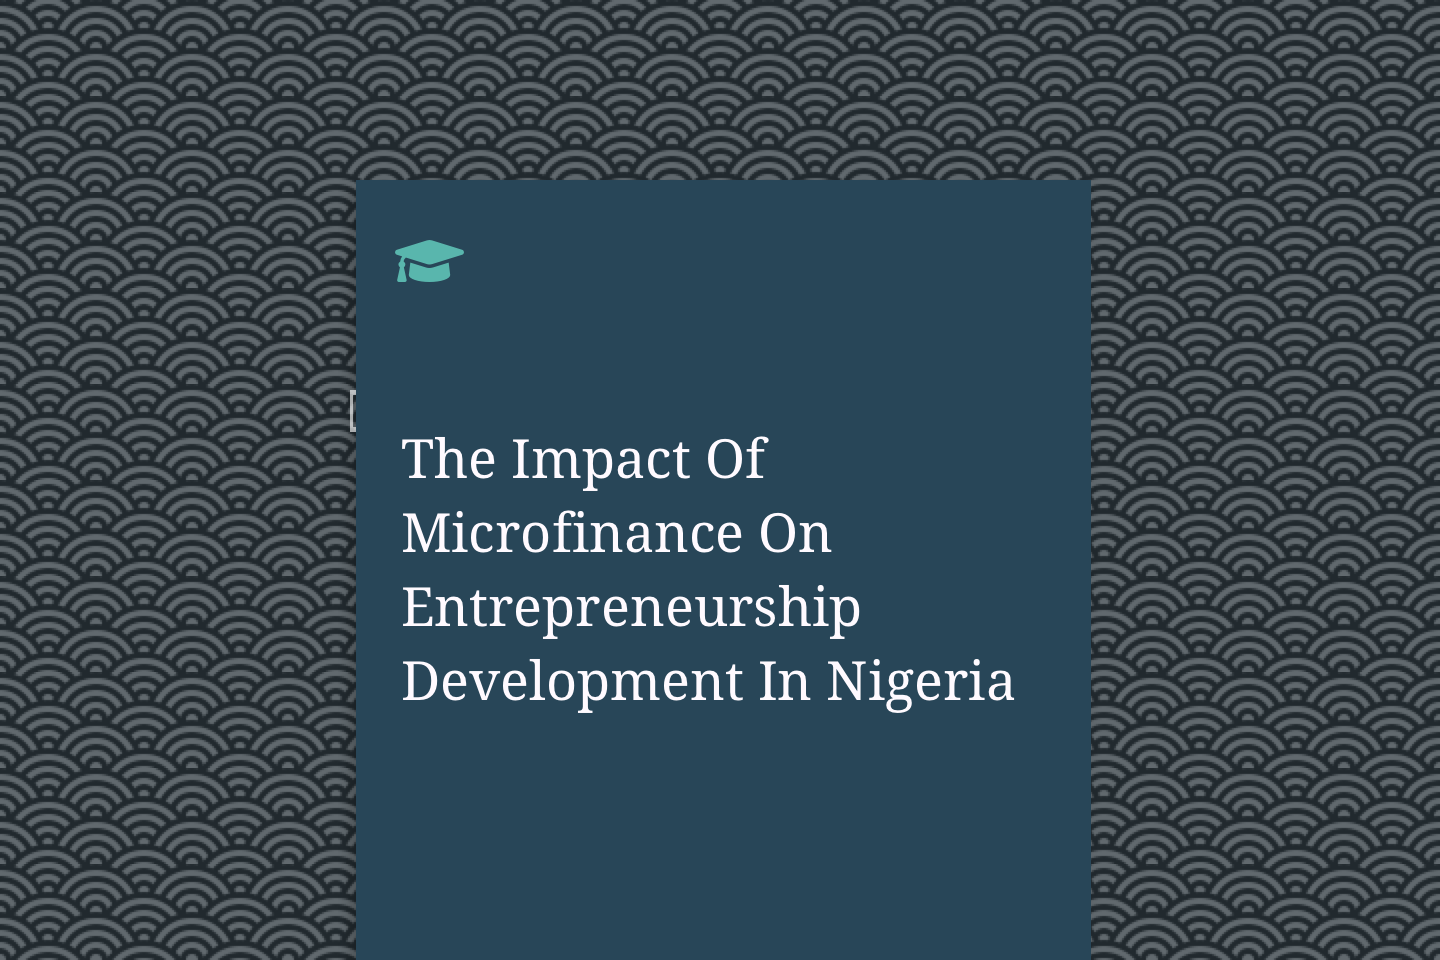 The Impact Of Microfinance On Entrepreneurship Development In Nigeria